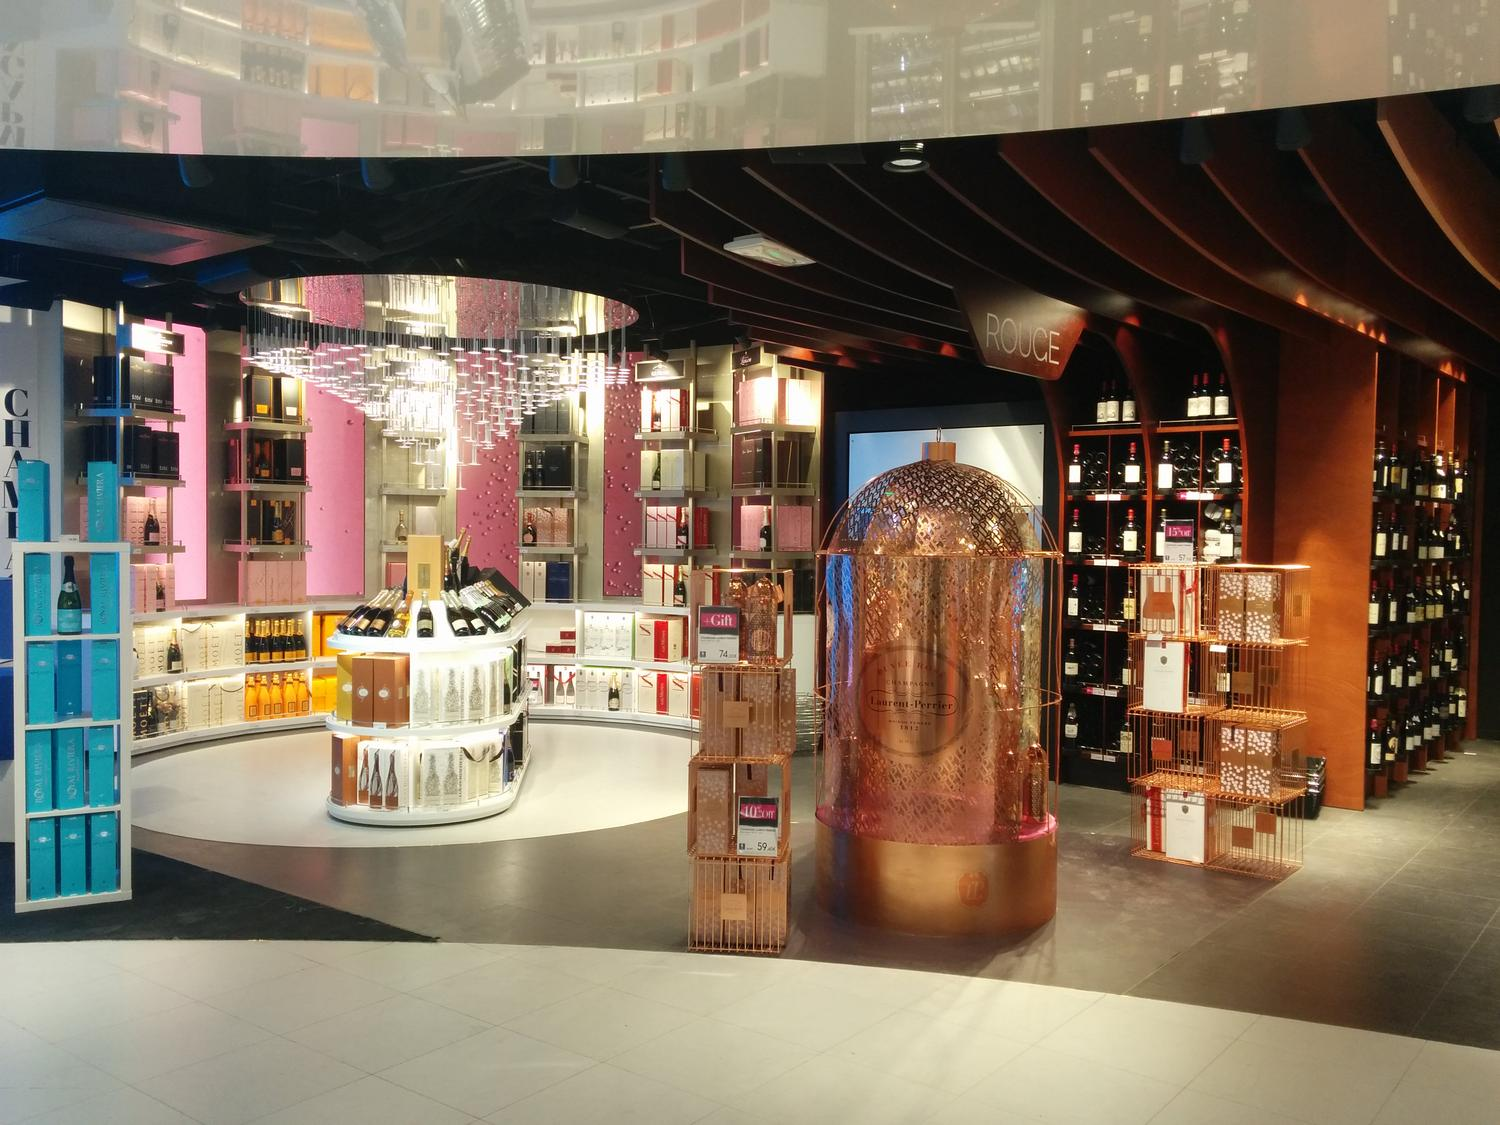 mobilier commercial, architecture commerciale en travel retail